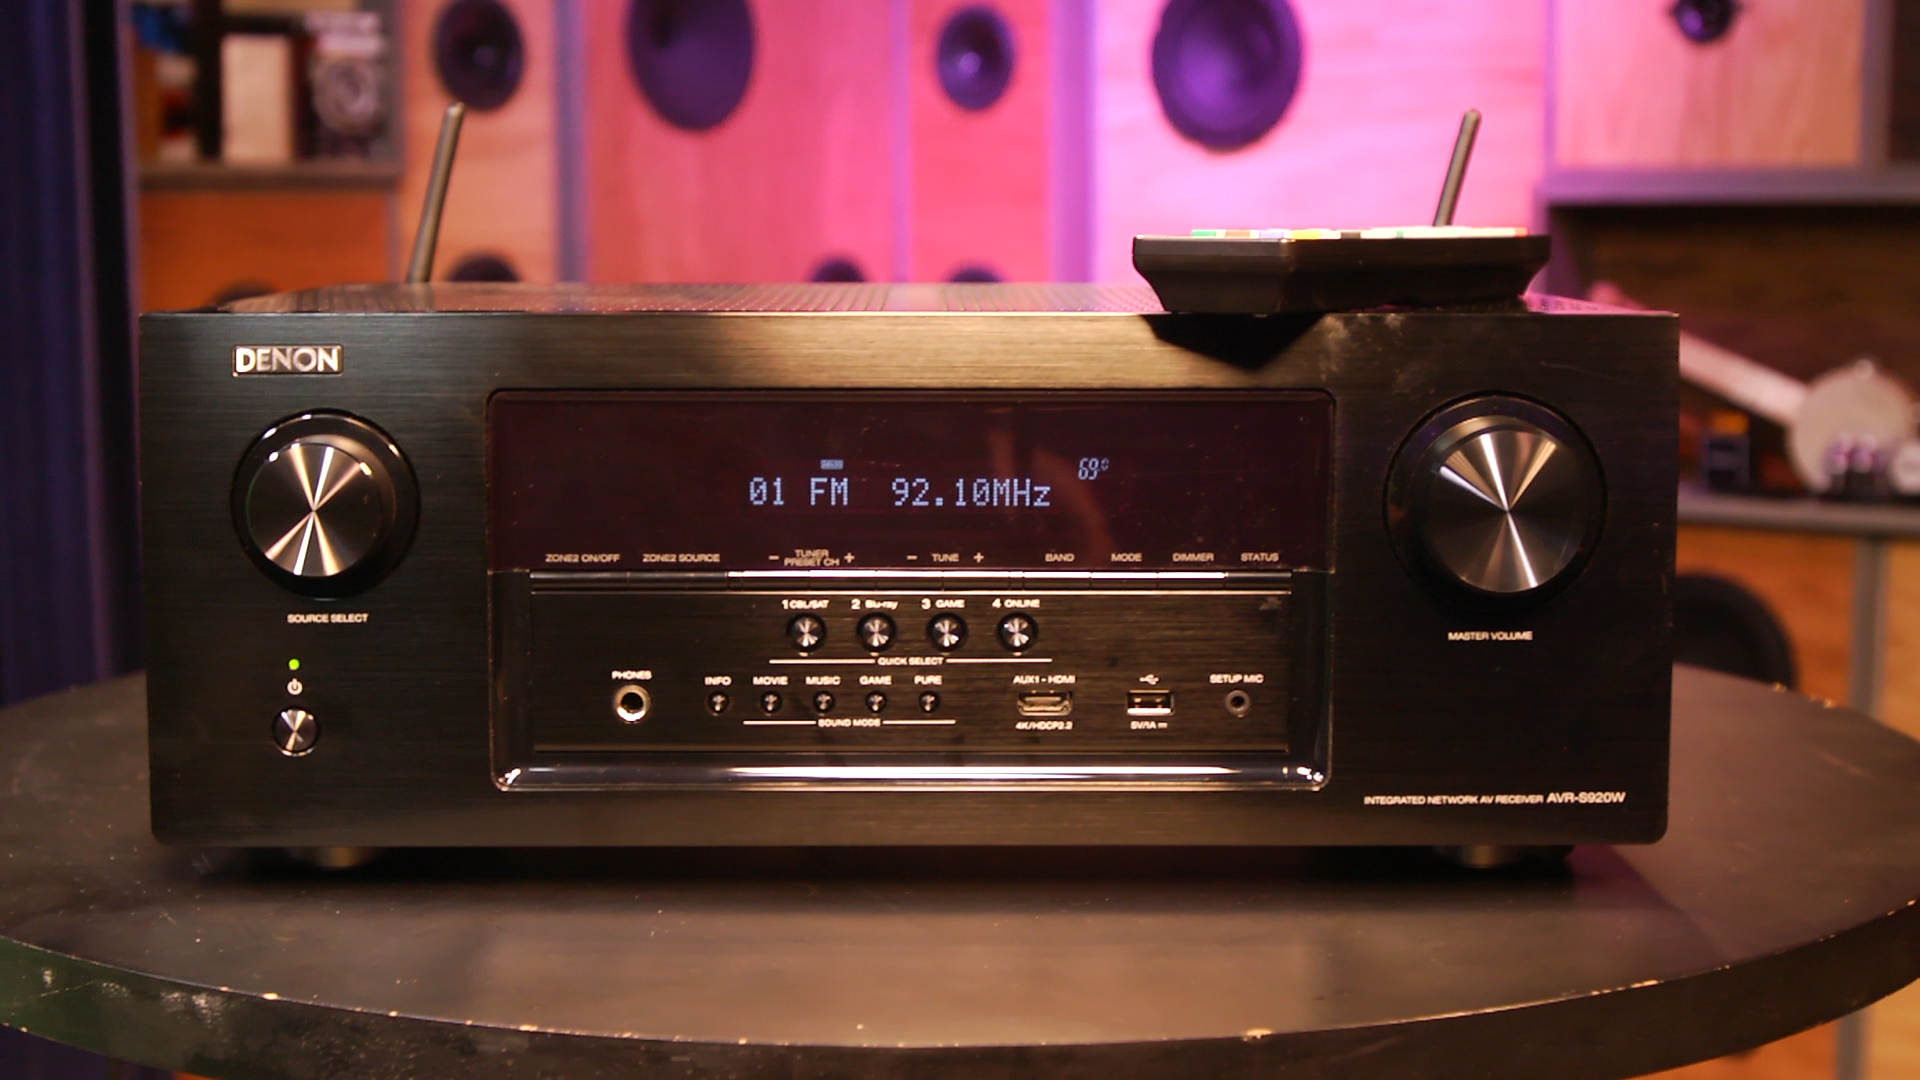 Video: Denon's AVR-S920W offers blockbuster sound and great usability